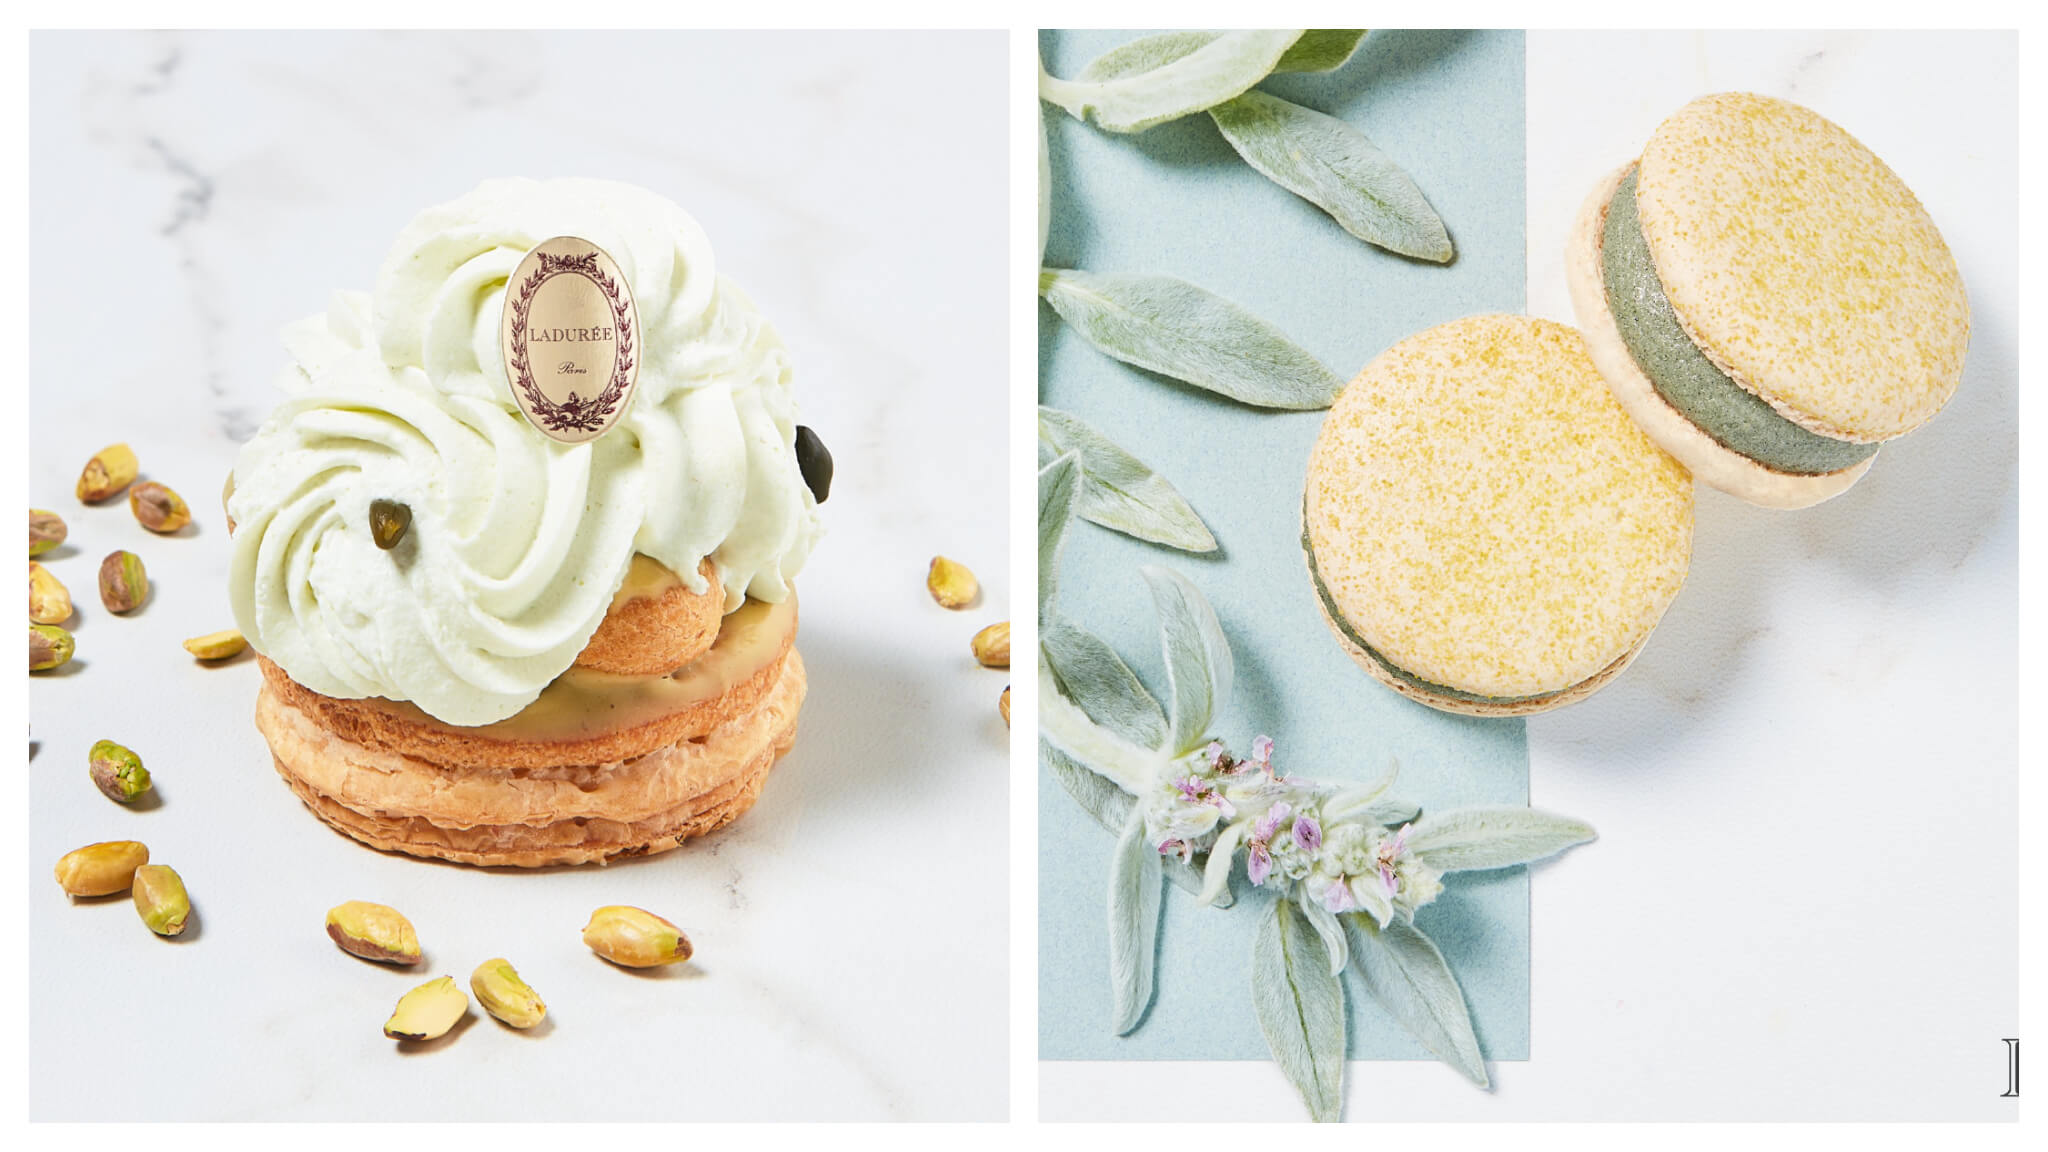 A pistachio pastry and green apple spirulina mint iced macarons from Ladurée